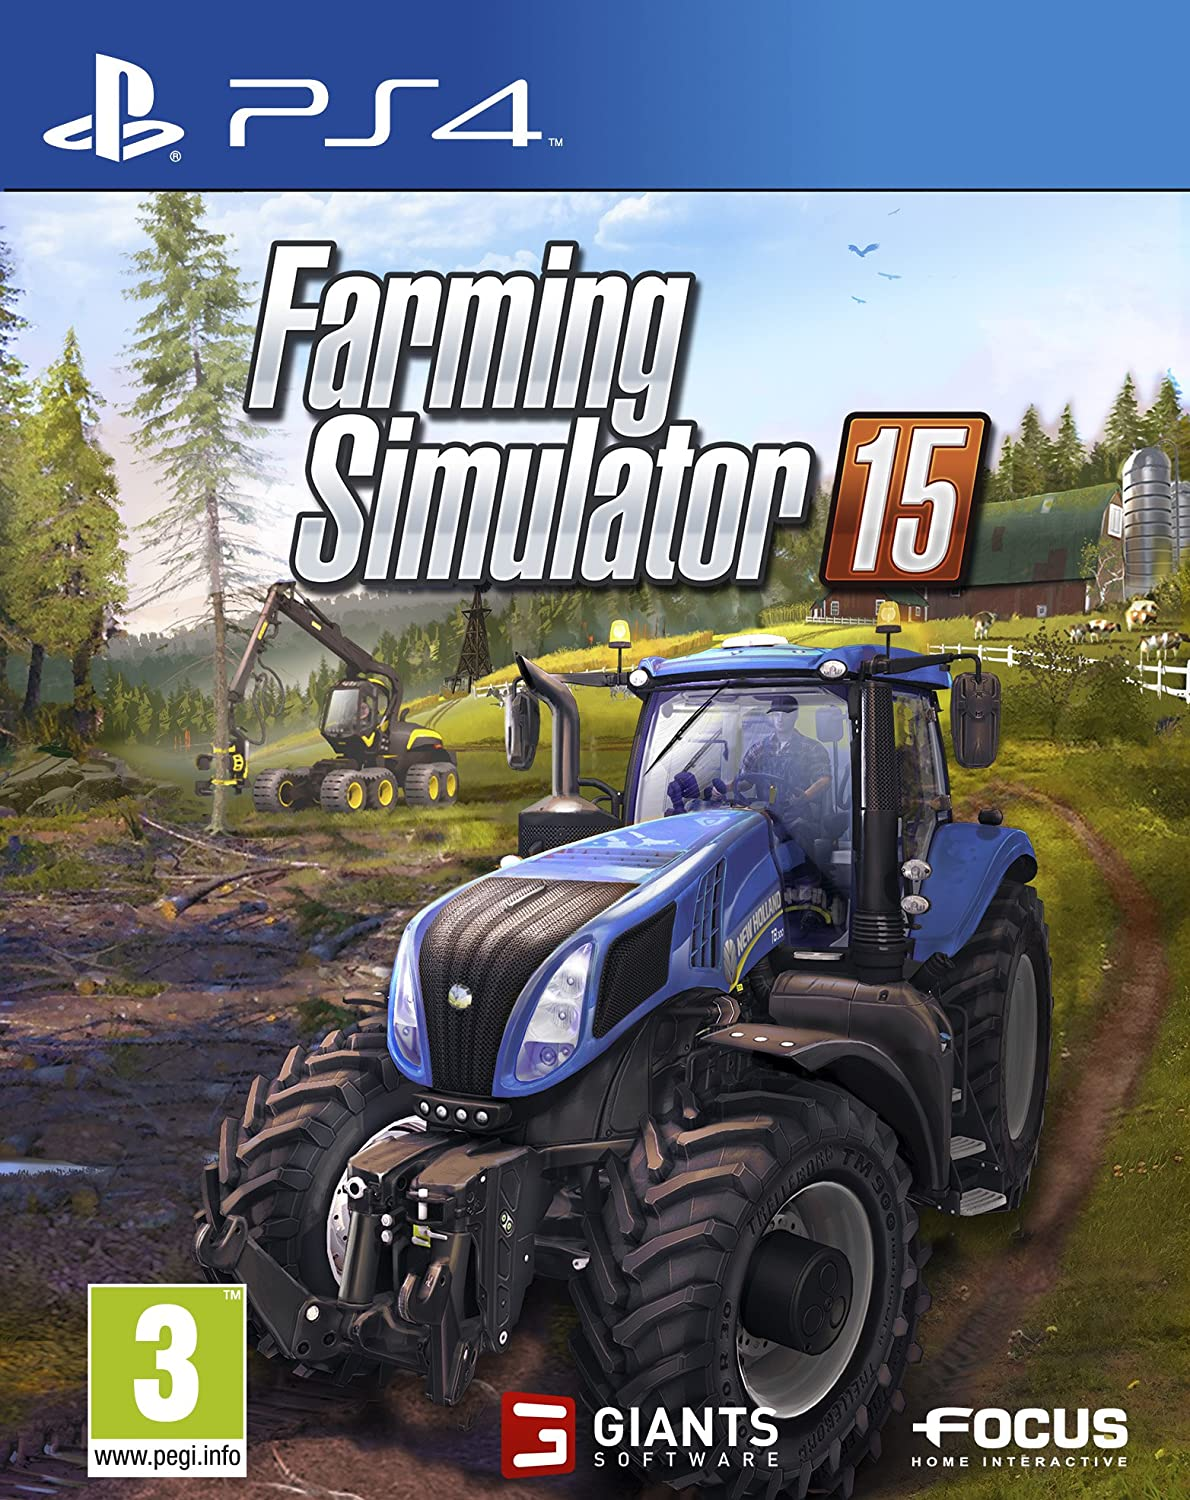 Farming Simulator 15 facts statistics